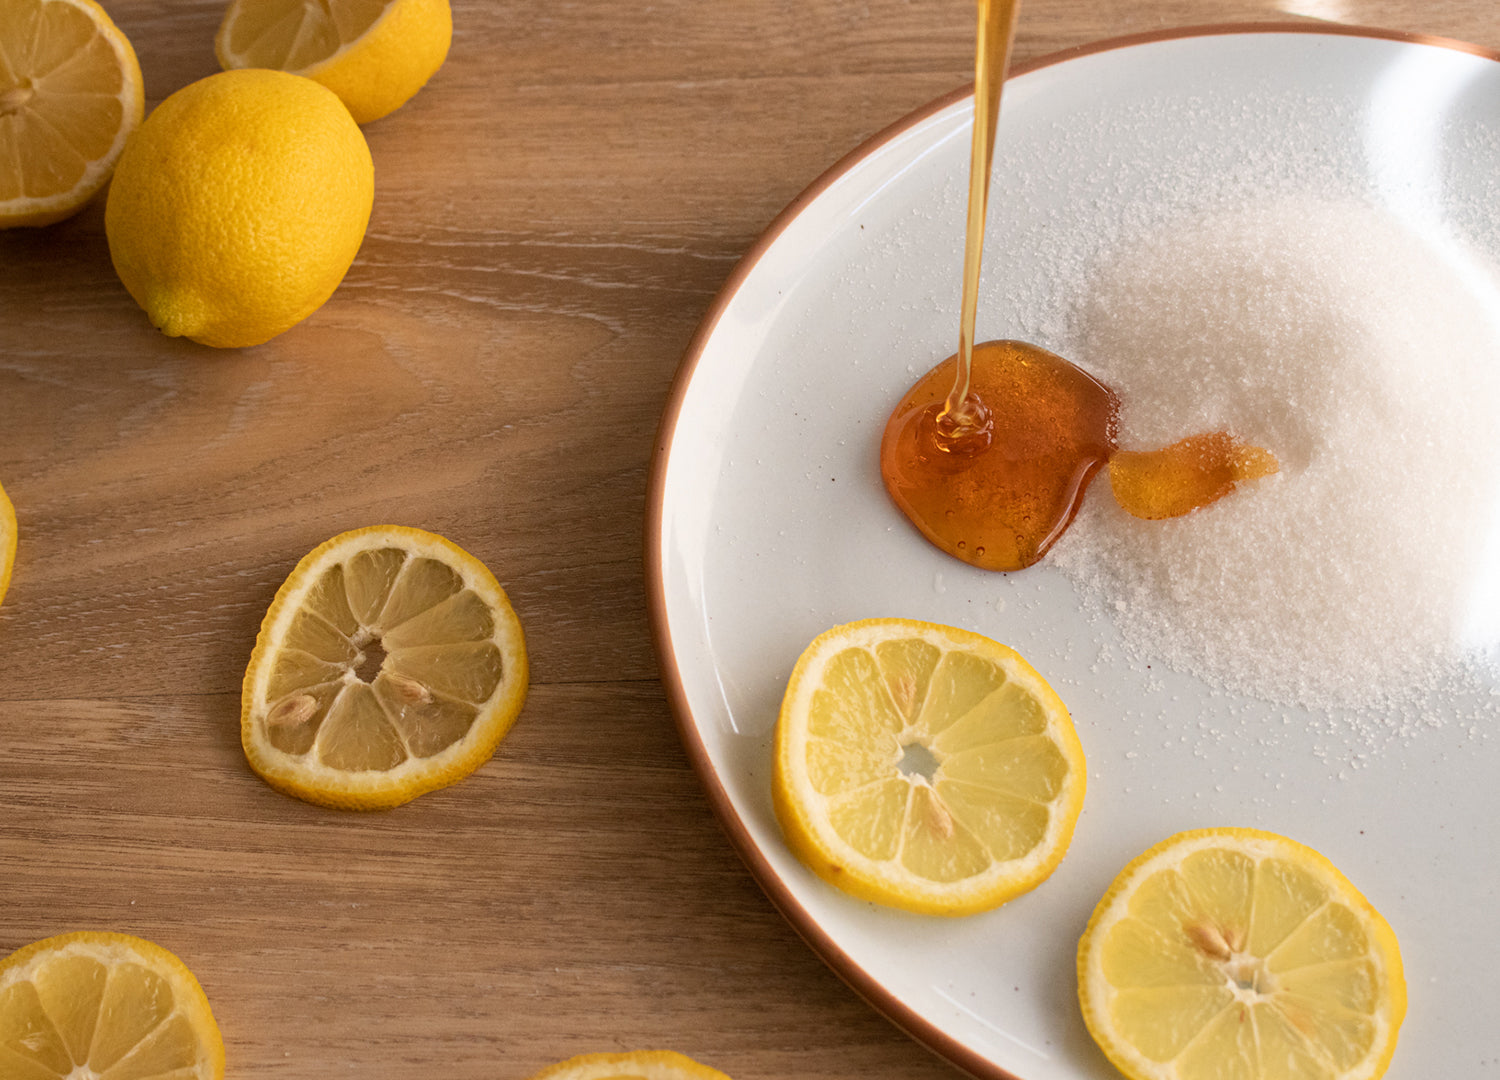 The ingredients for sugar paste shown on a Mora Ceramics Earl Grey dinner plate. Sugar, honey, and lemons.